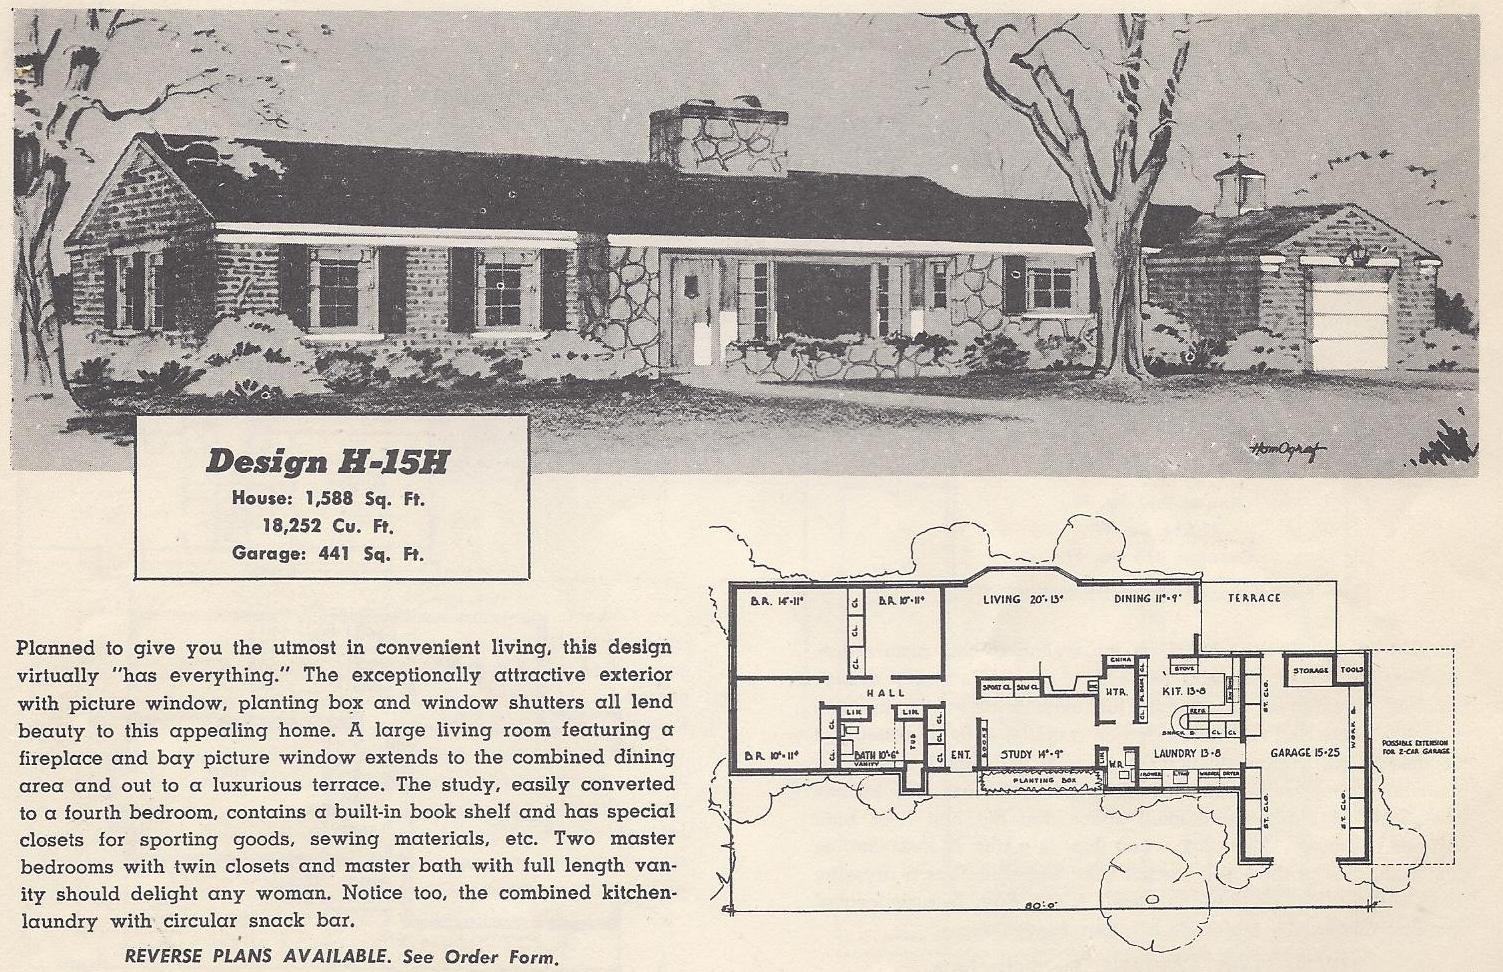 Vintage house plans 15h antique alter ego for Vintage home plans